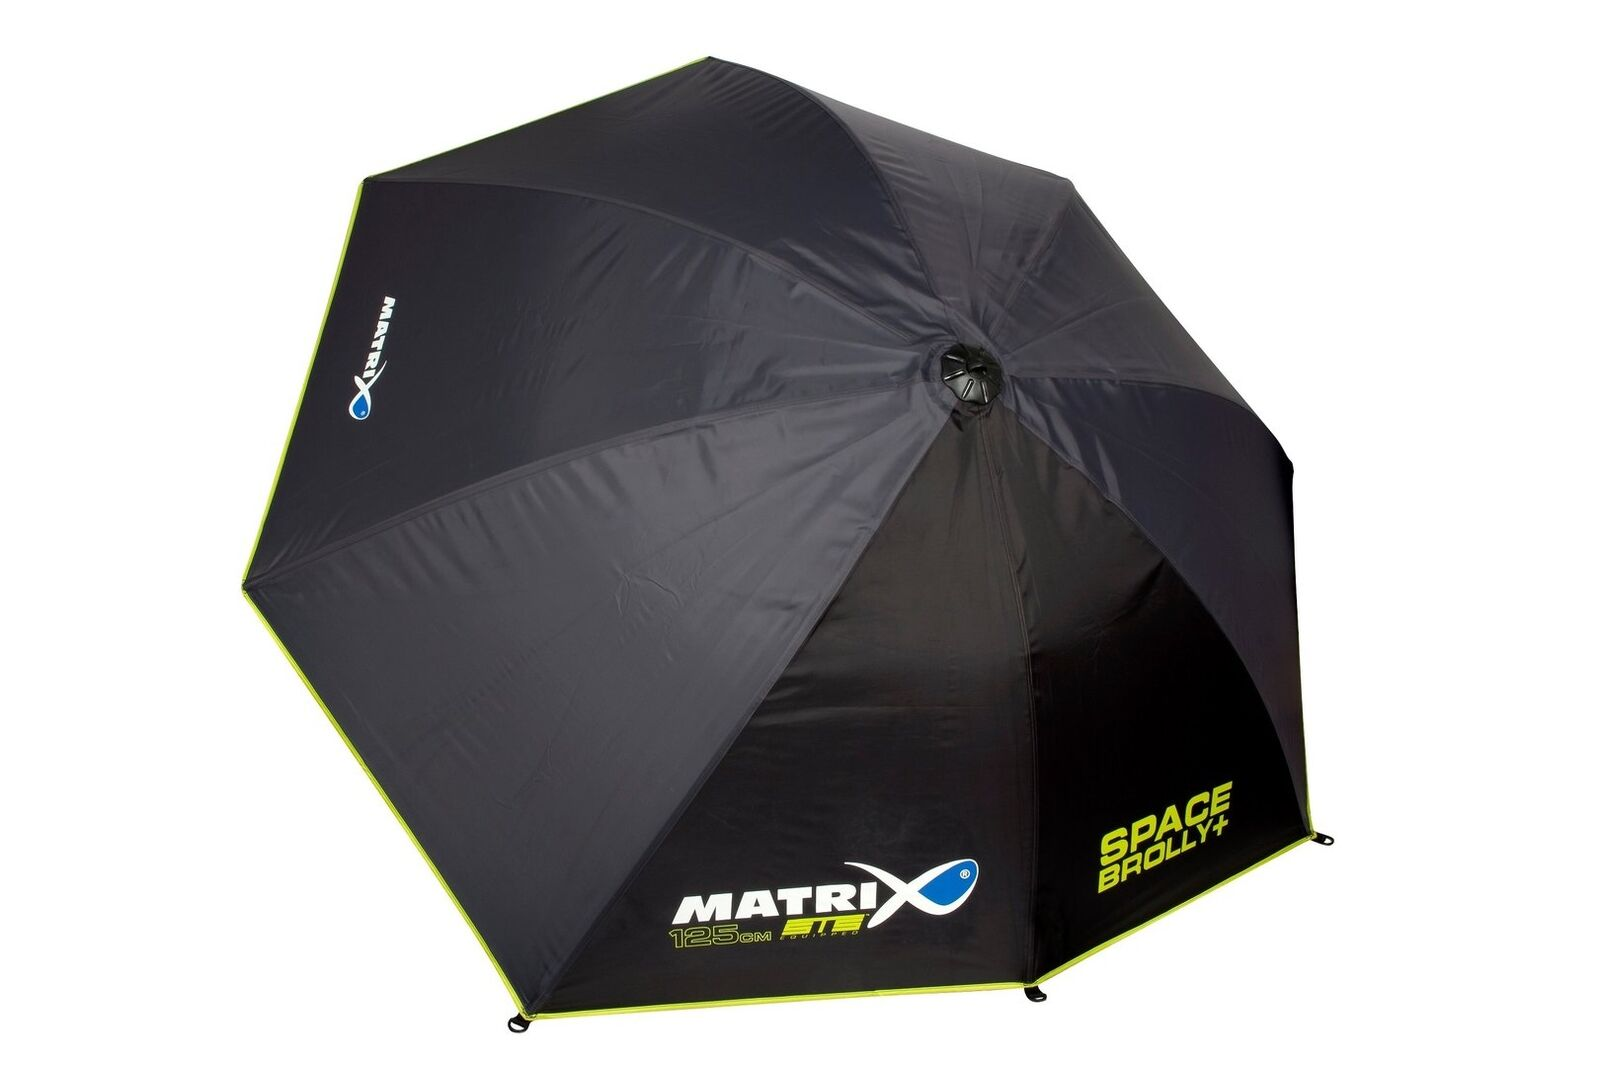 Fox Matrix Space Brolly 50  125cm gum007 angel paraguas paraguas Brolley Umbrella